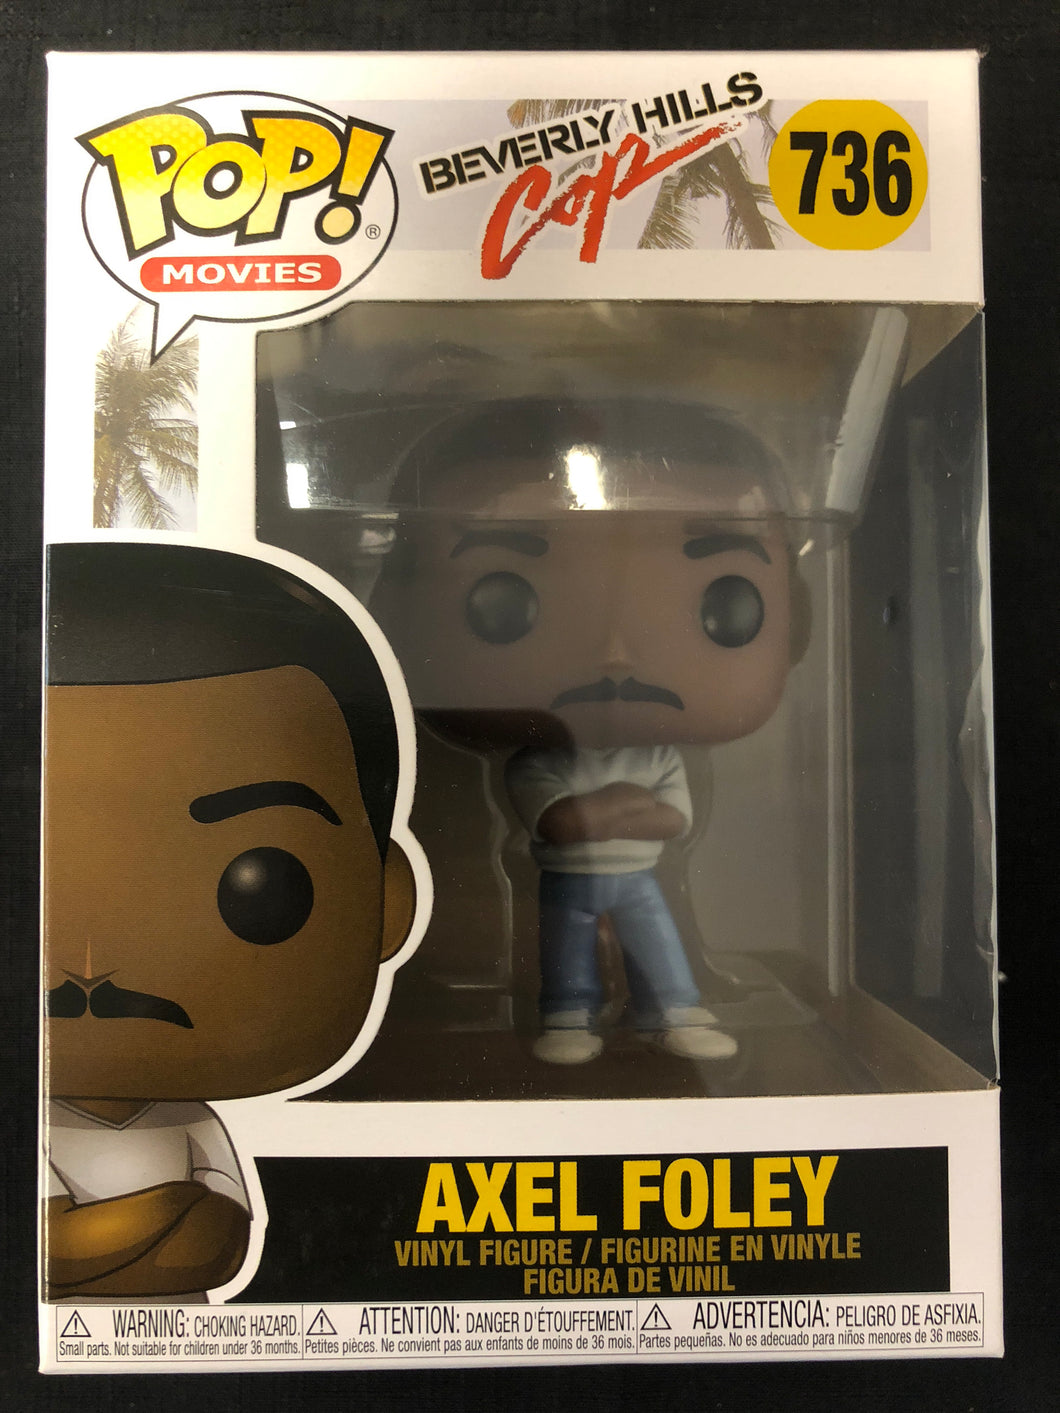 Funko Pop! Beverly Hills Cop: Axel Foley #736